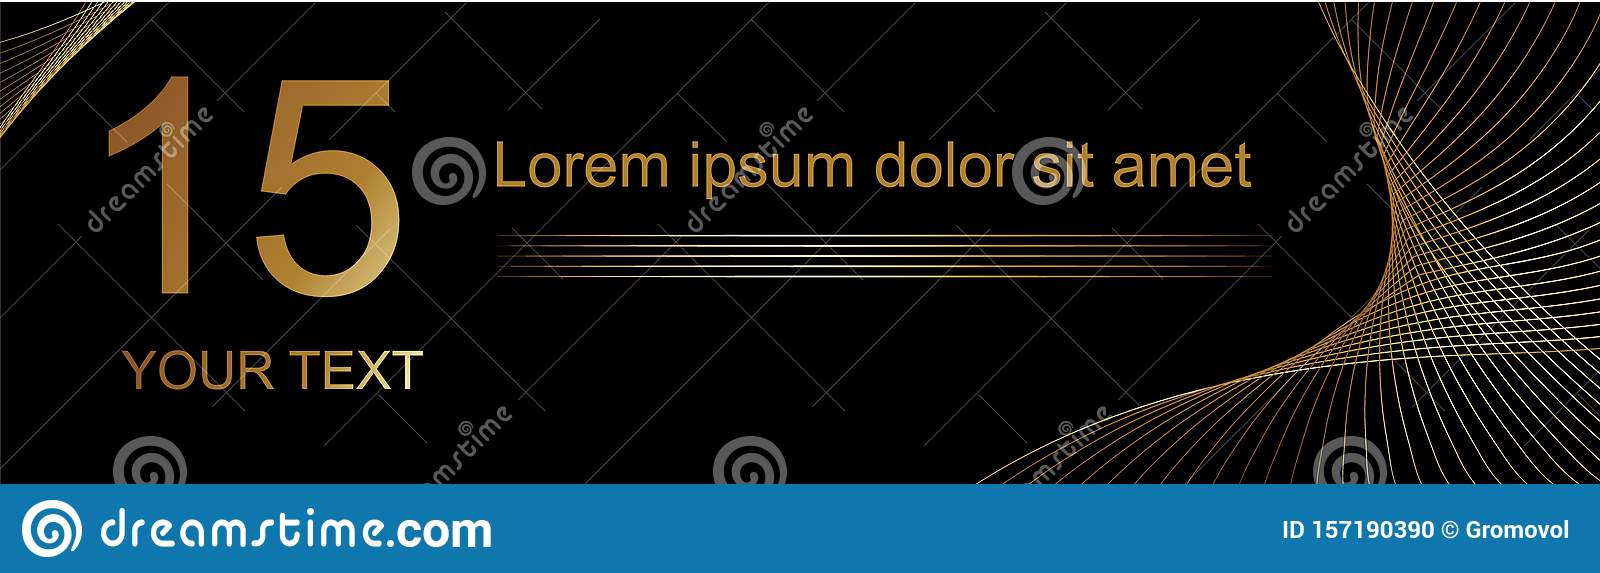 Banner Title Made In Gold Text On A Black Background For The Design Of Musical Events Albums Music Discs Stock Vector Illustration Of Vector Music 157190390